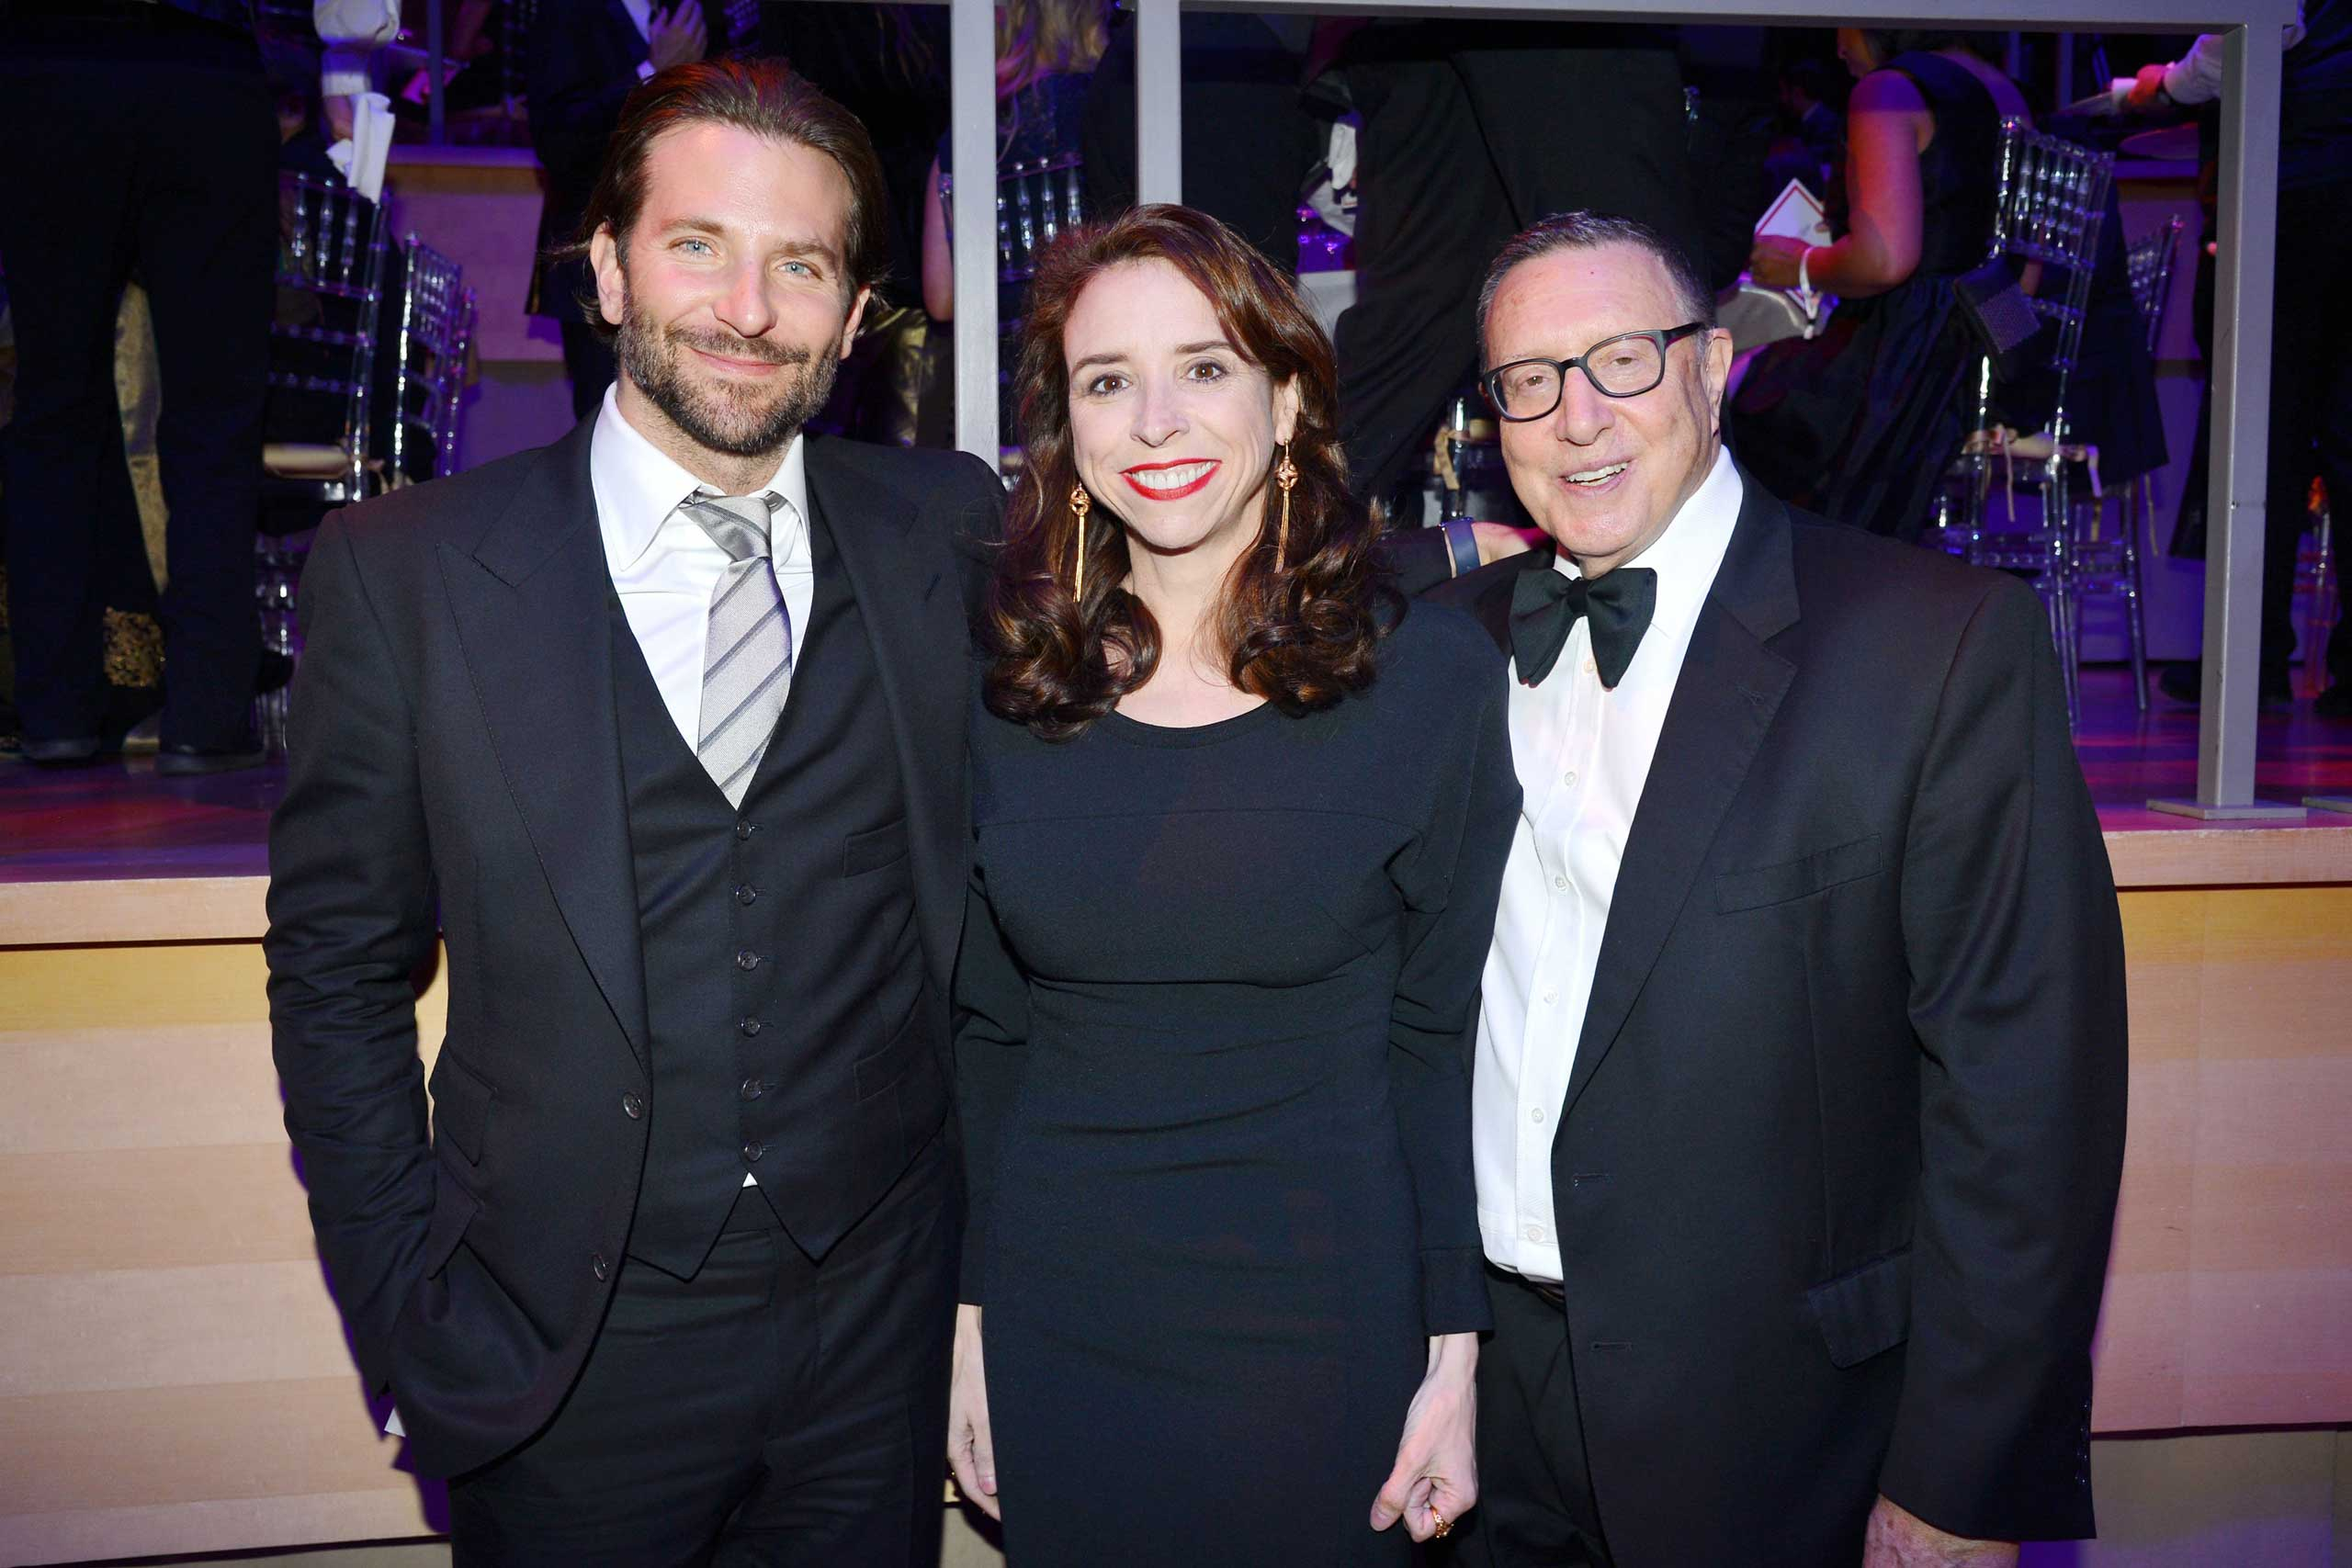 Bradley Cooper, Jane Boon, Norman Pearlstein attend the TIME 100 Gala at Jazz at Lincoln Center in New York City on April 21, 2015.